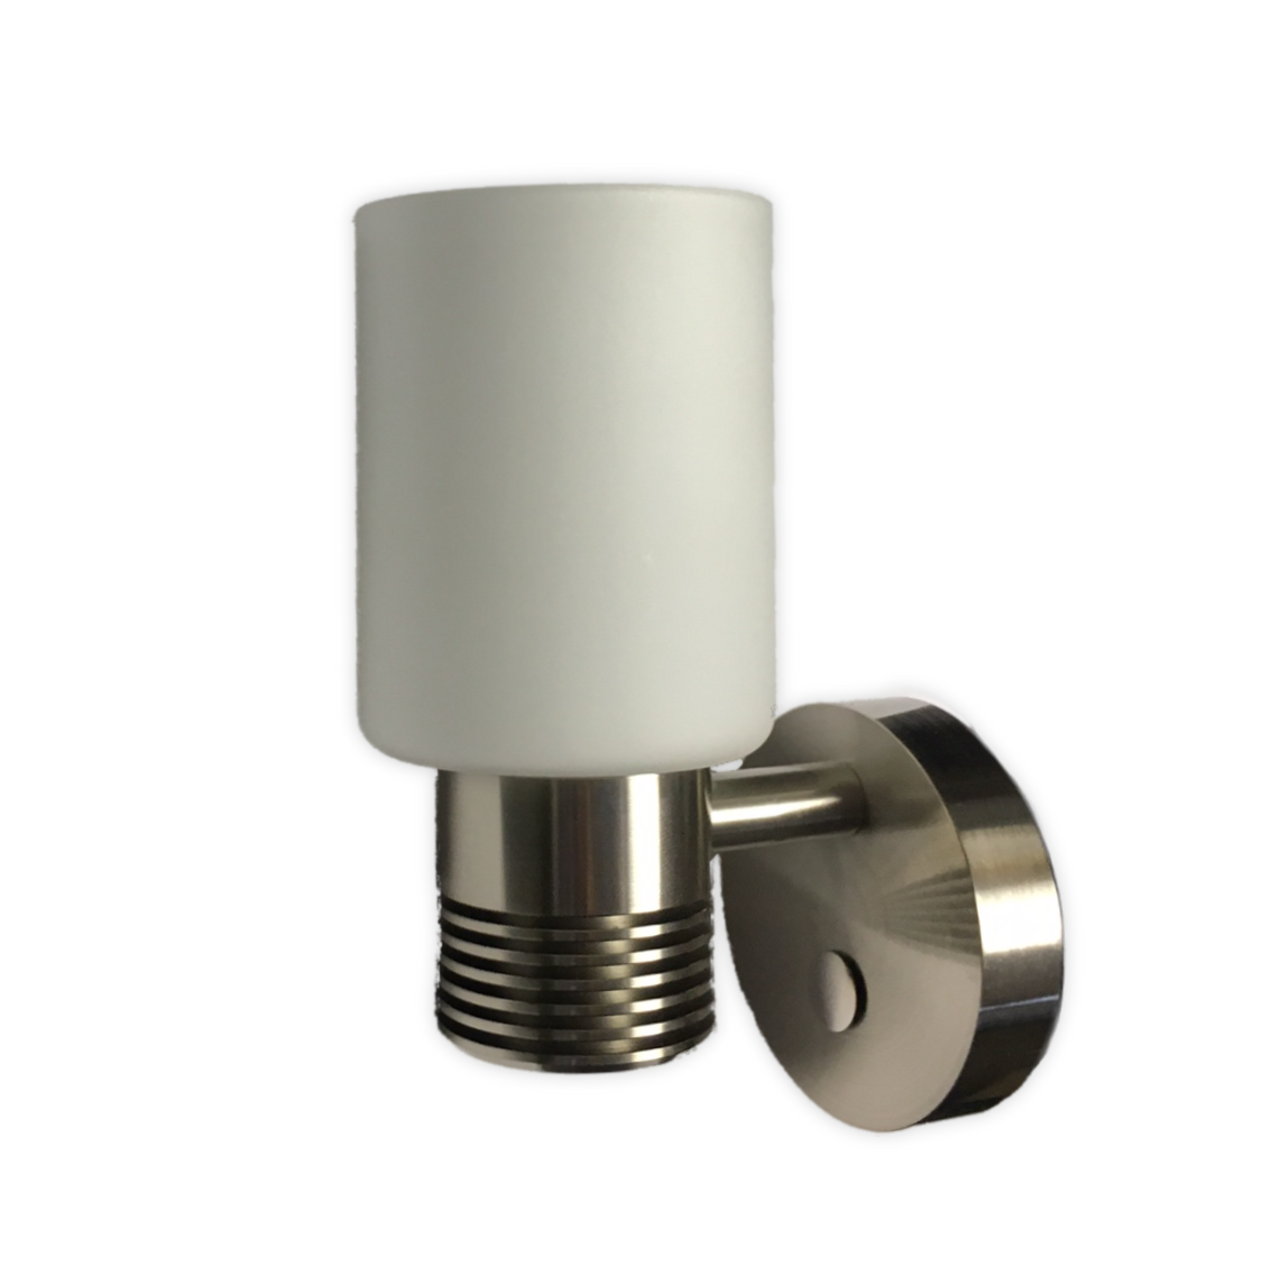 LED Bulkhead Sconce Light - Nickel Finish Shown